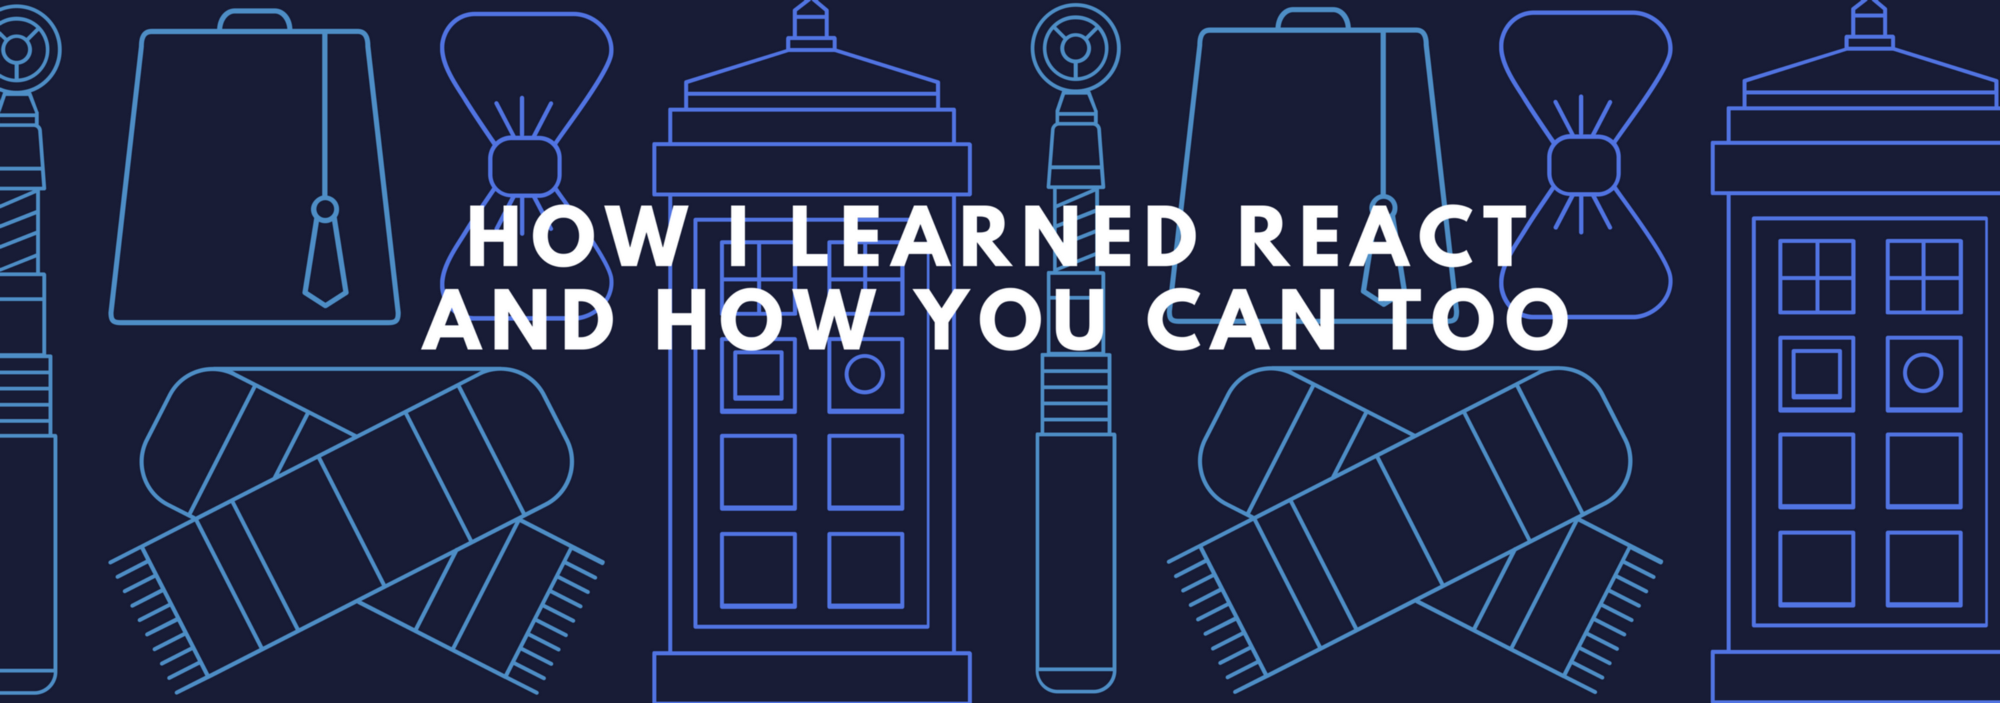 How I learned React and how you can too